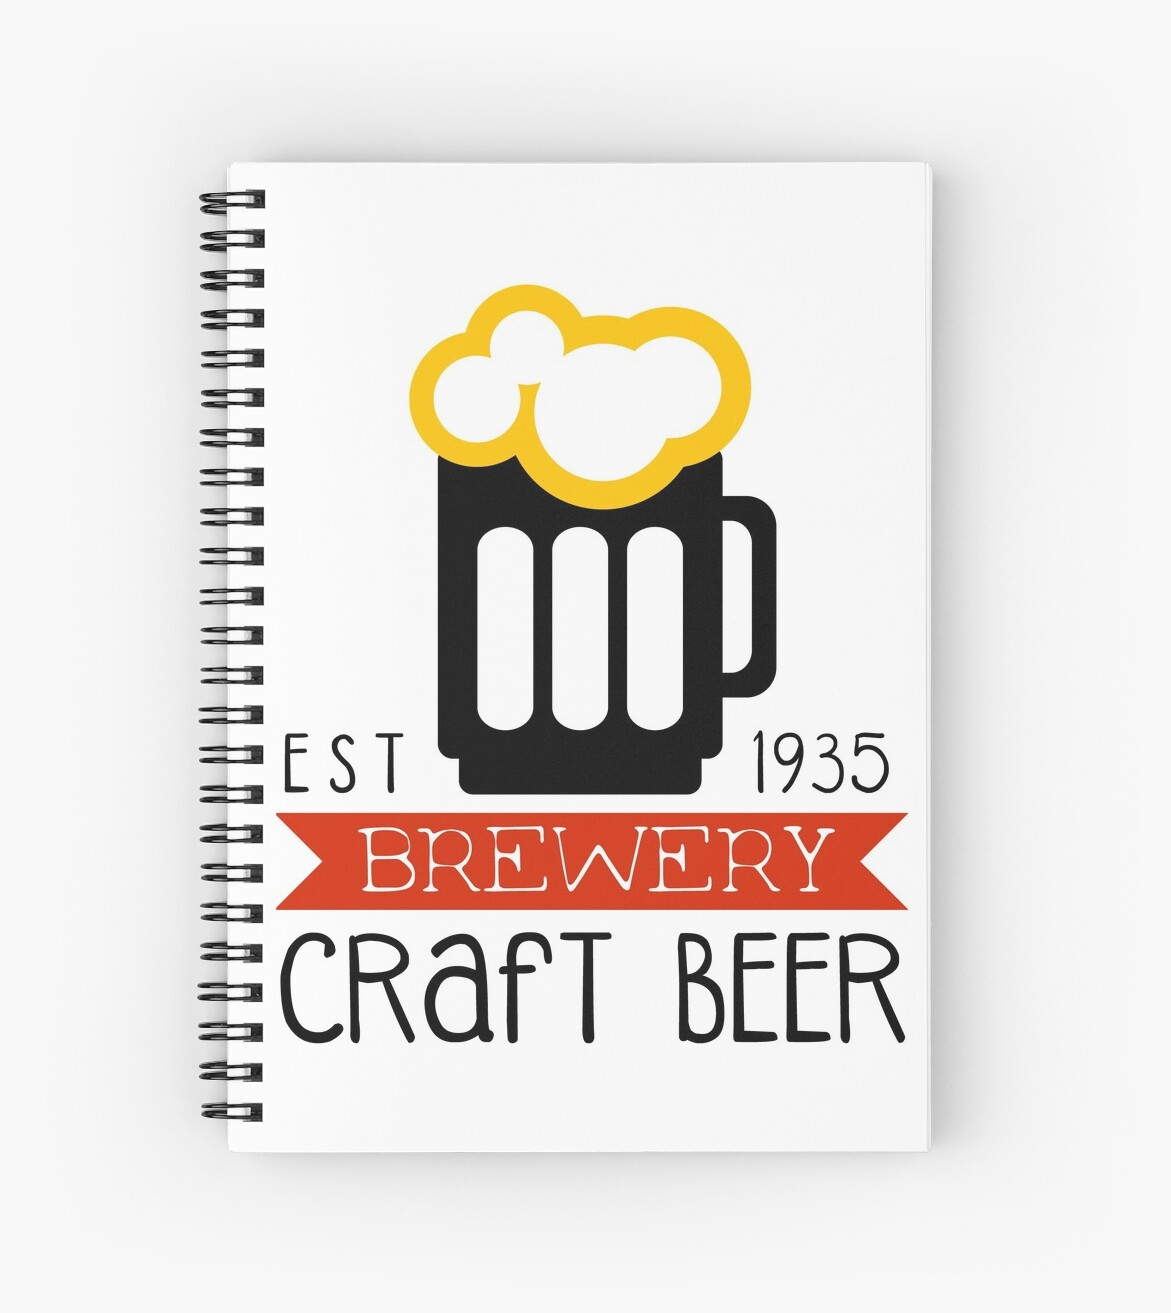 craft brewery logo design template spiral notebooks by topvectors